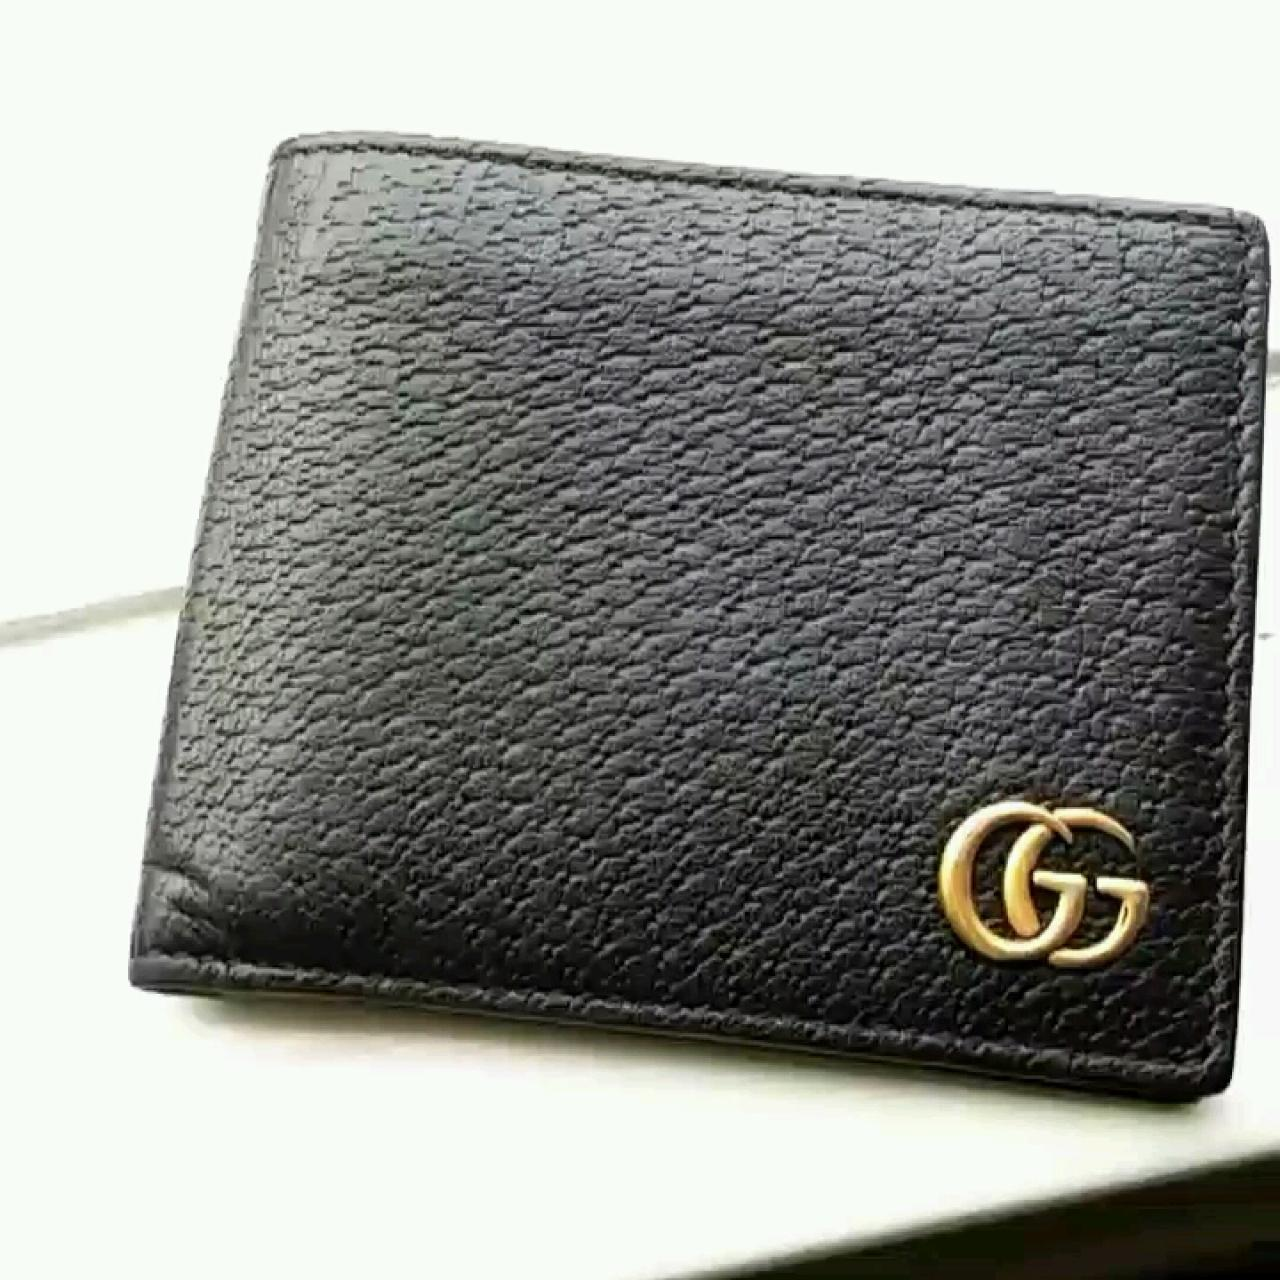 c596aac0eead @queenxcalifia. 6 months ago. Melbourne, Victoria, AU. Brand new, unused GG  Marmont leather Gucci bi-fold wallet.